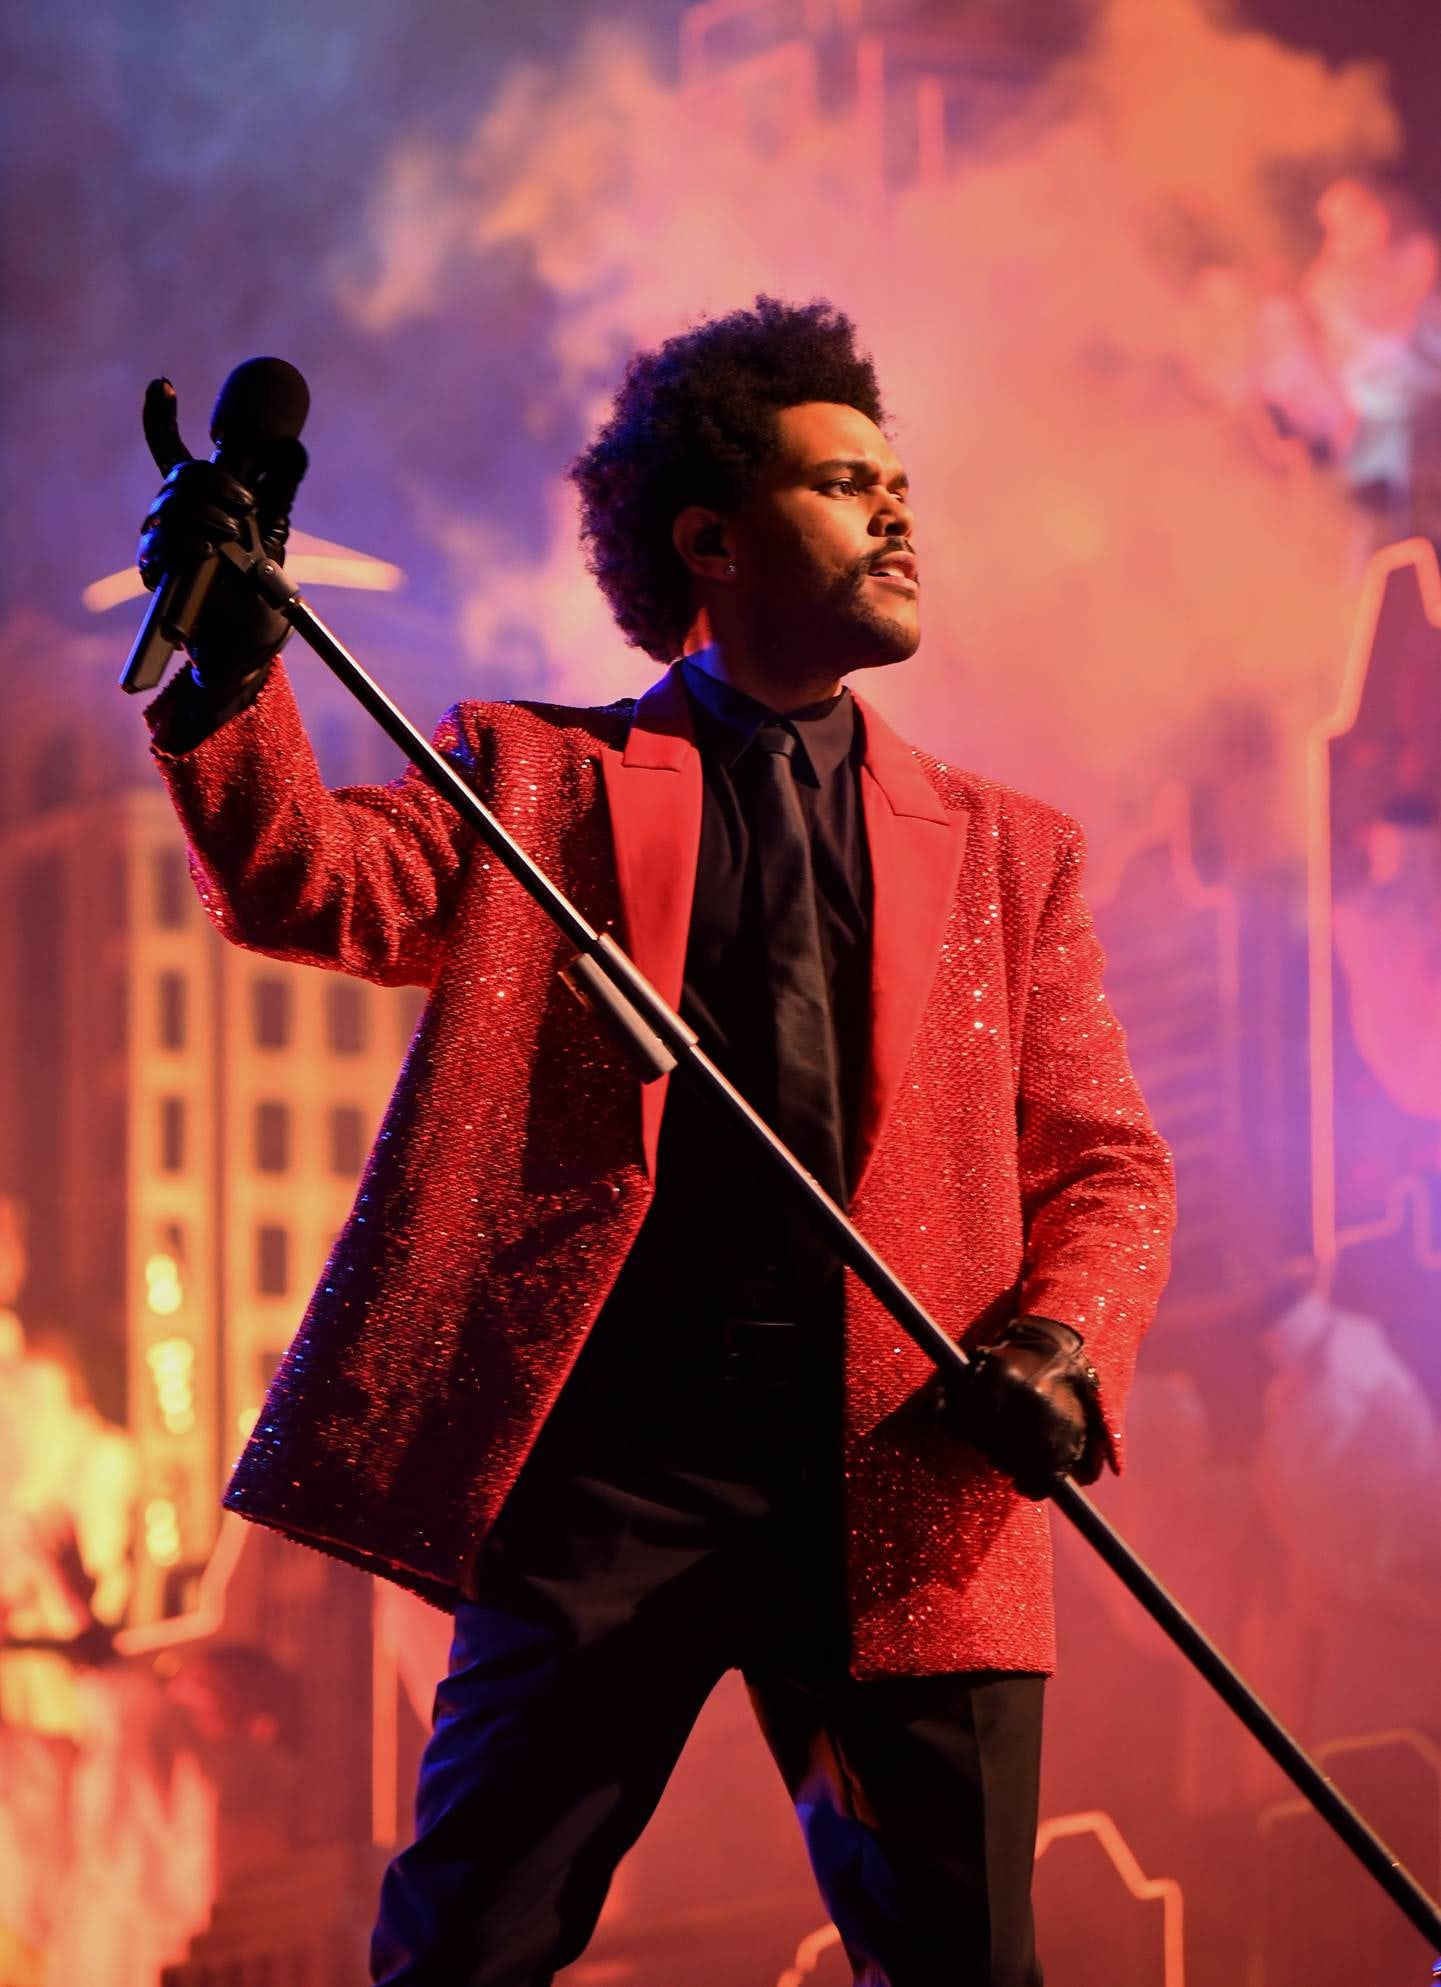 Abel Makkonen Tesfaye, known professionally as The Weeknd, wore custom Givenchy Haute Couture for the 2021 Super Bowl half-time performance | Source: Courtesy